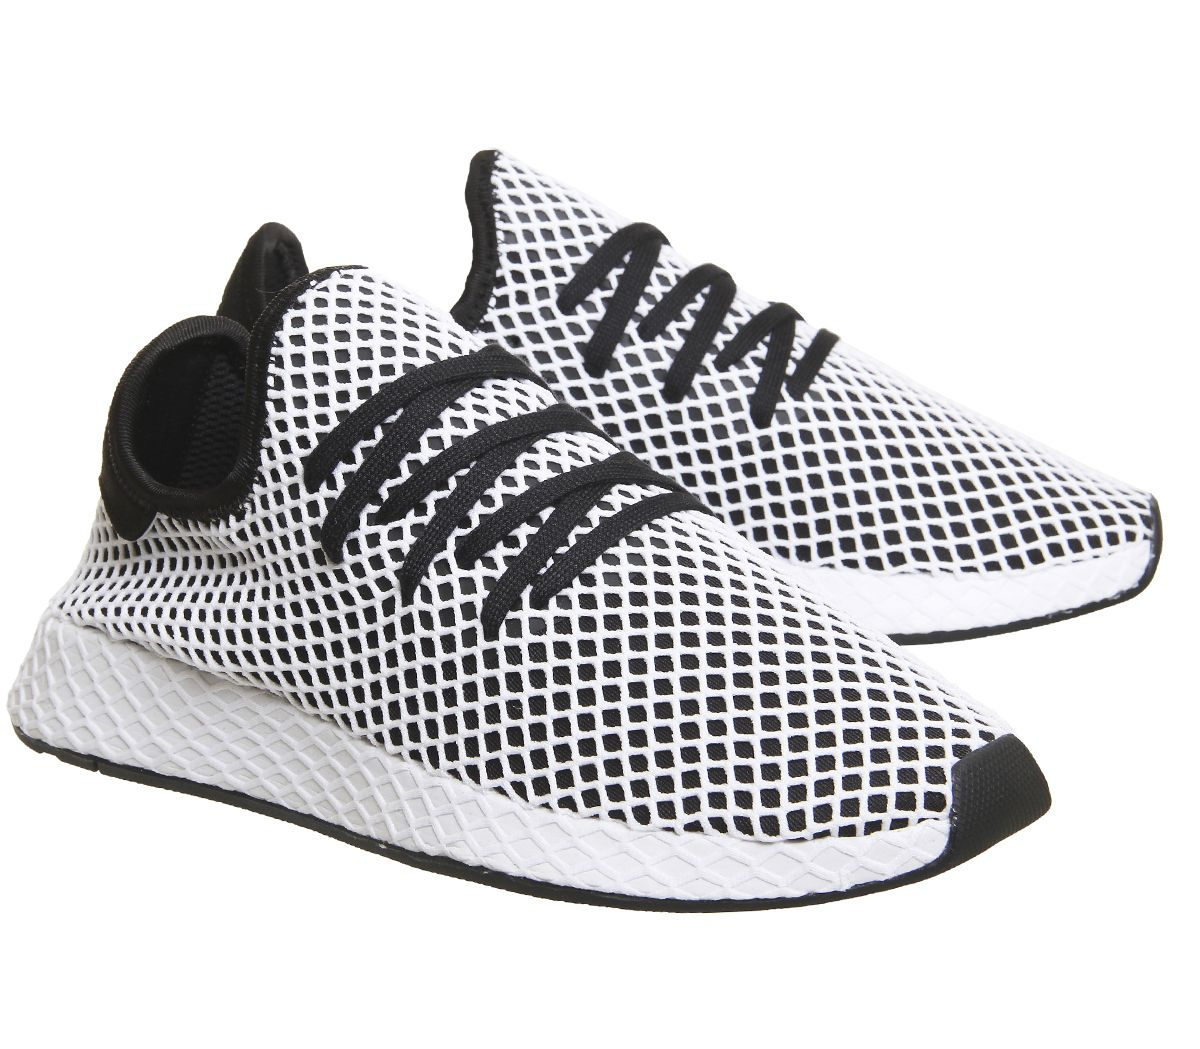 9589f3765 Sentinel Mens Adidas Deerupt Trainers Core Black White Trainers Shoes